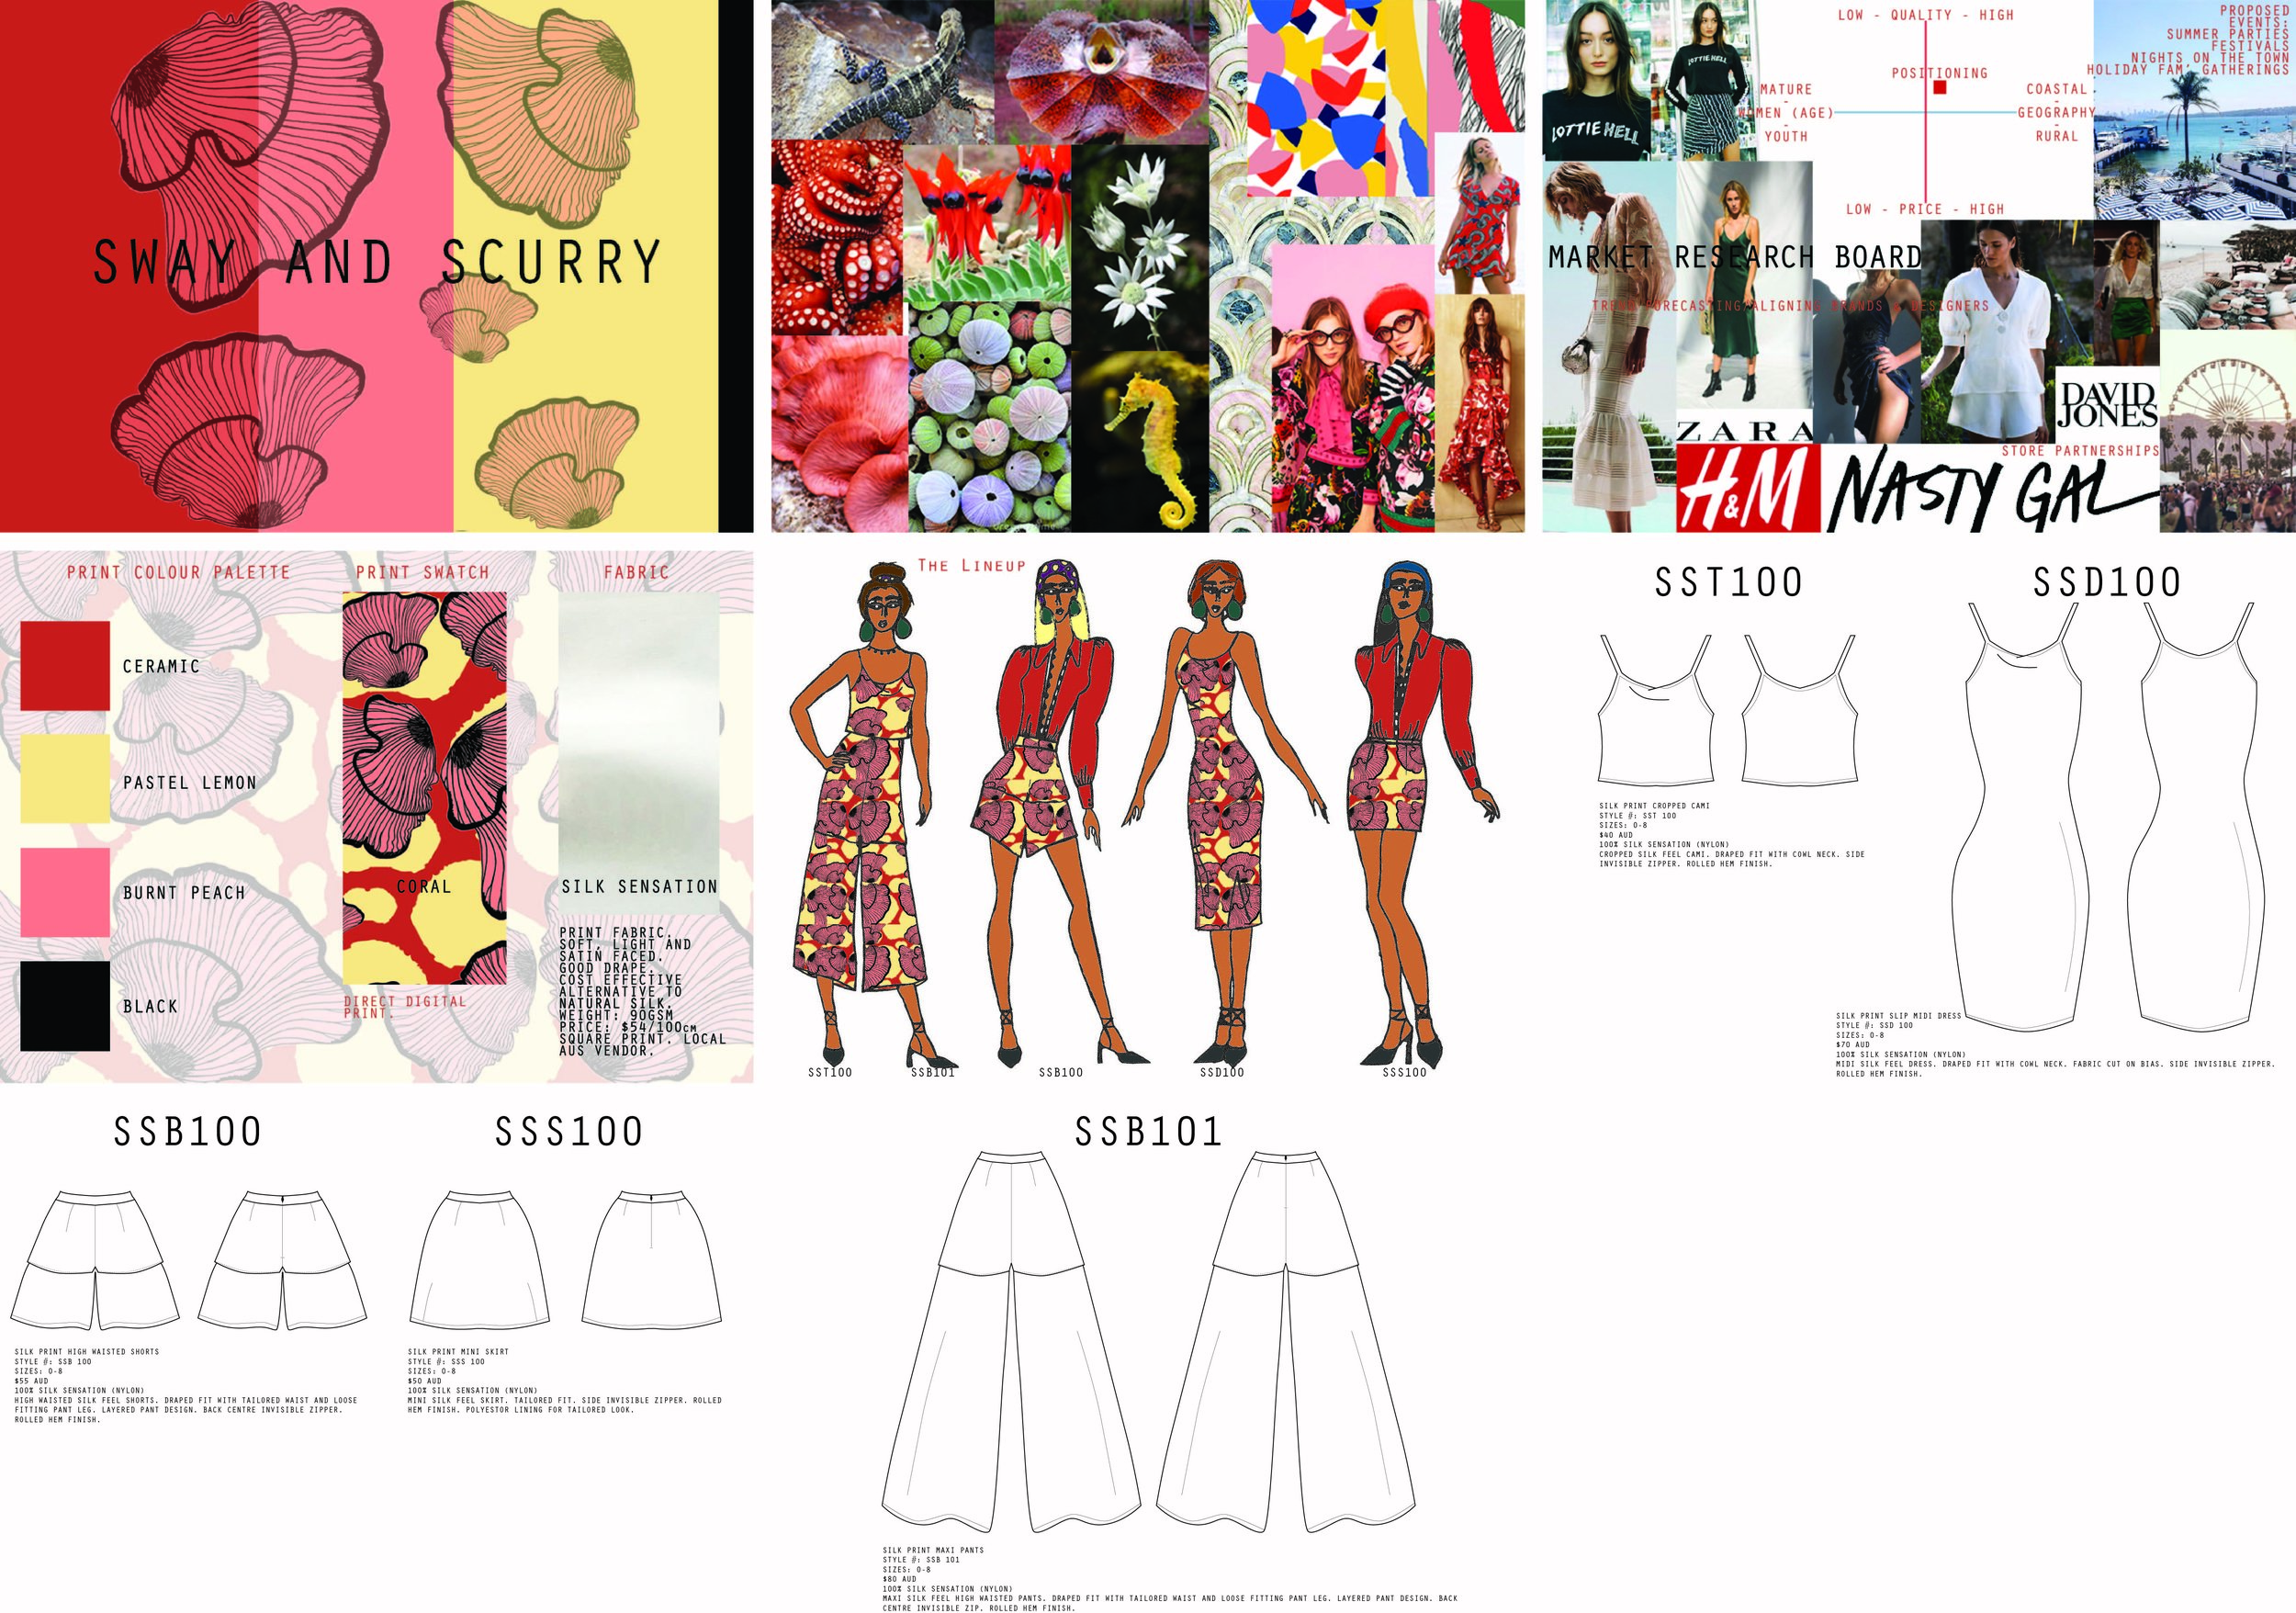 Proposed Spring Summer Range 'Sway and Scurry' exhibiting digitally printed fabric story 'coral'.